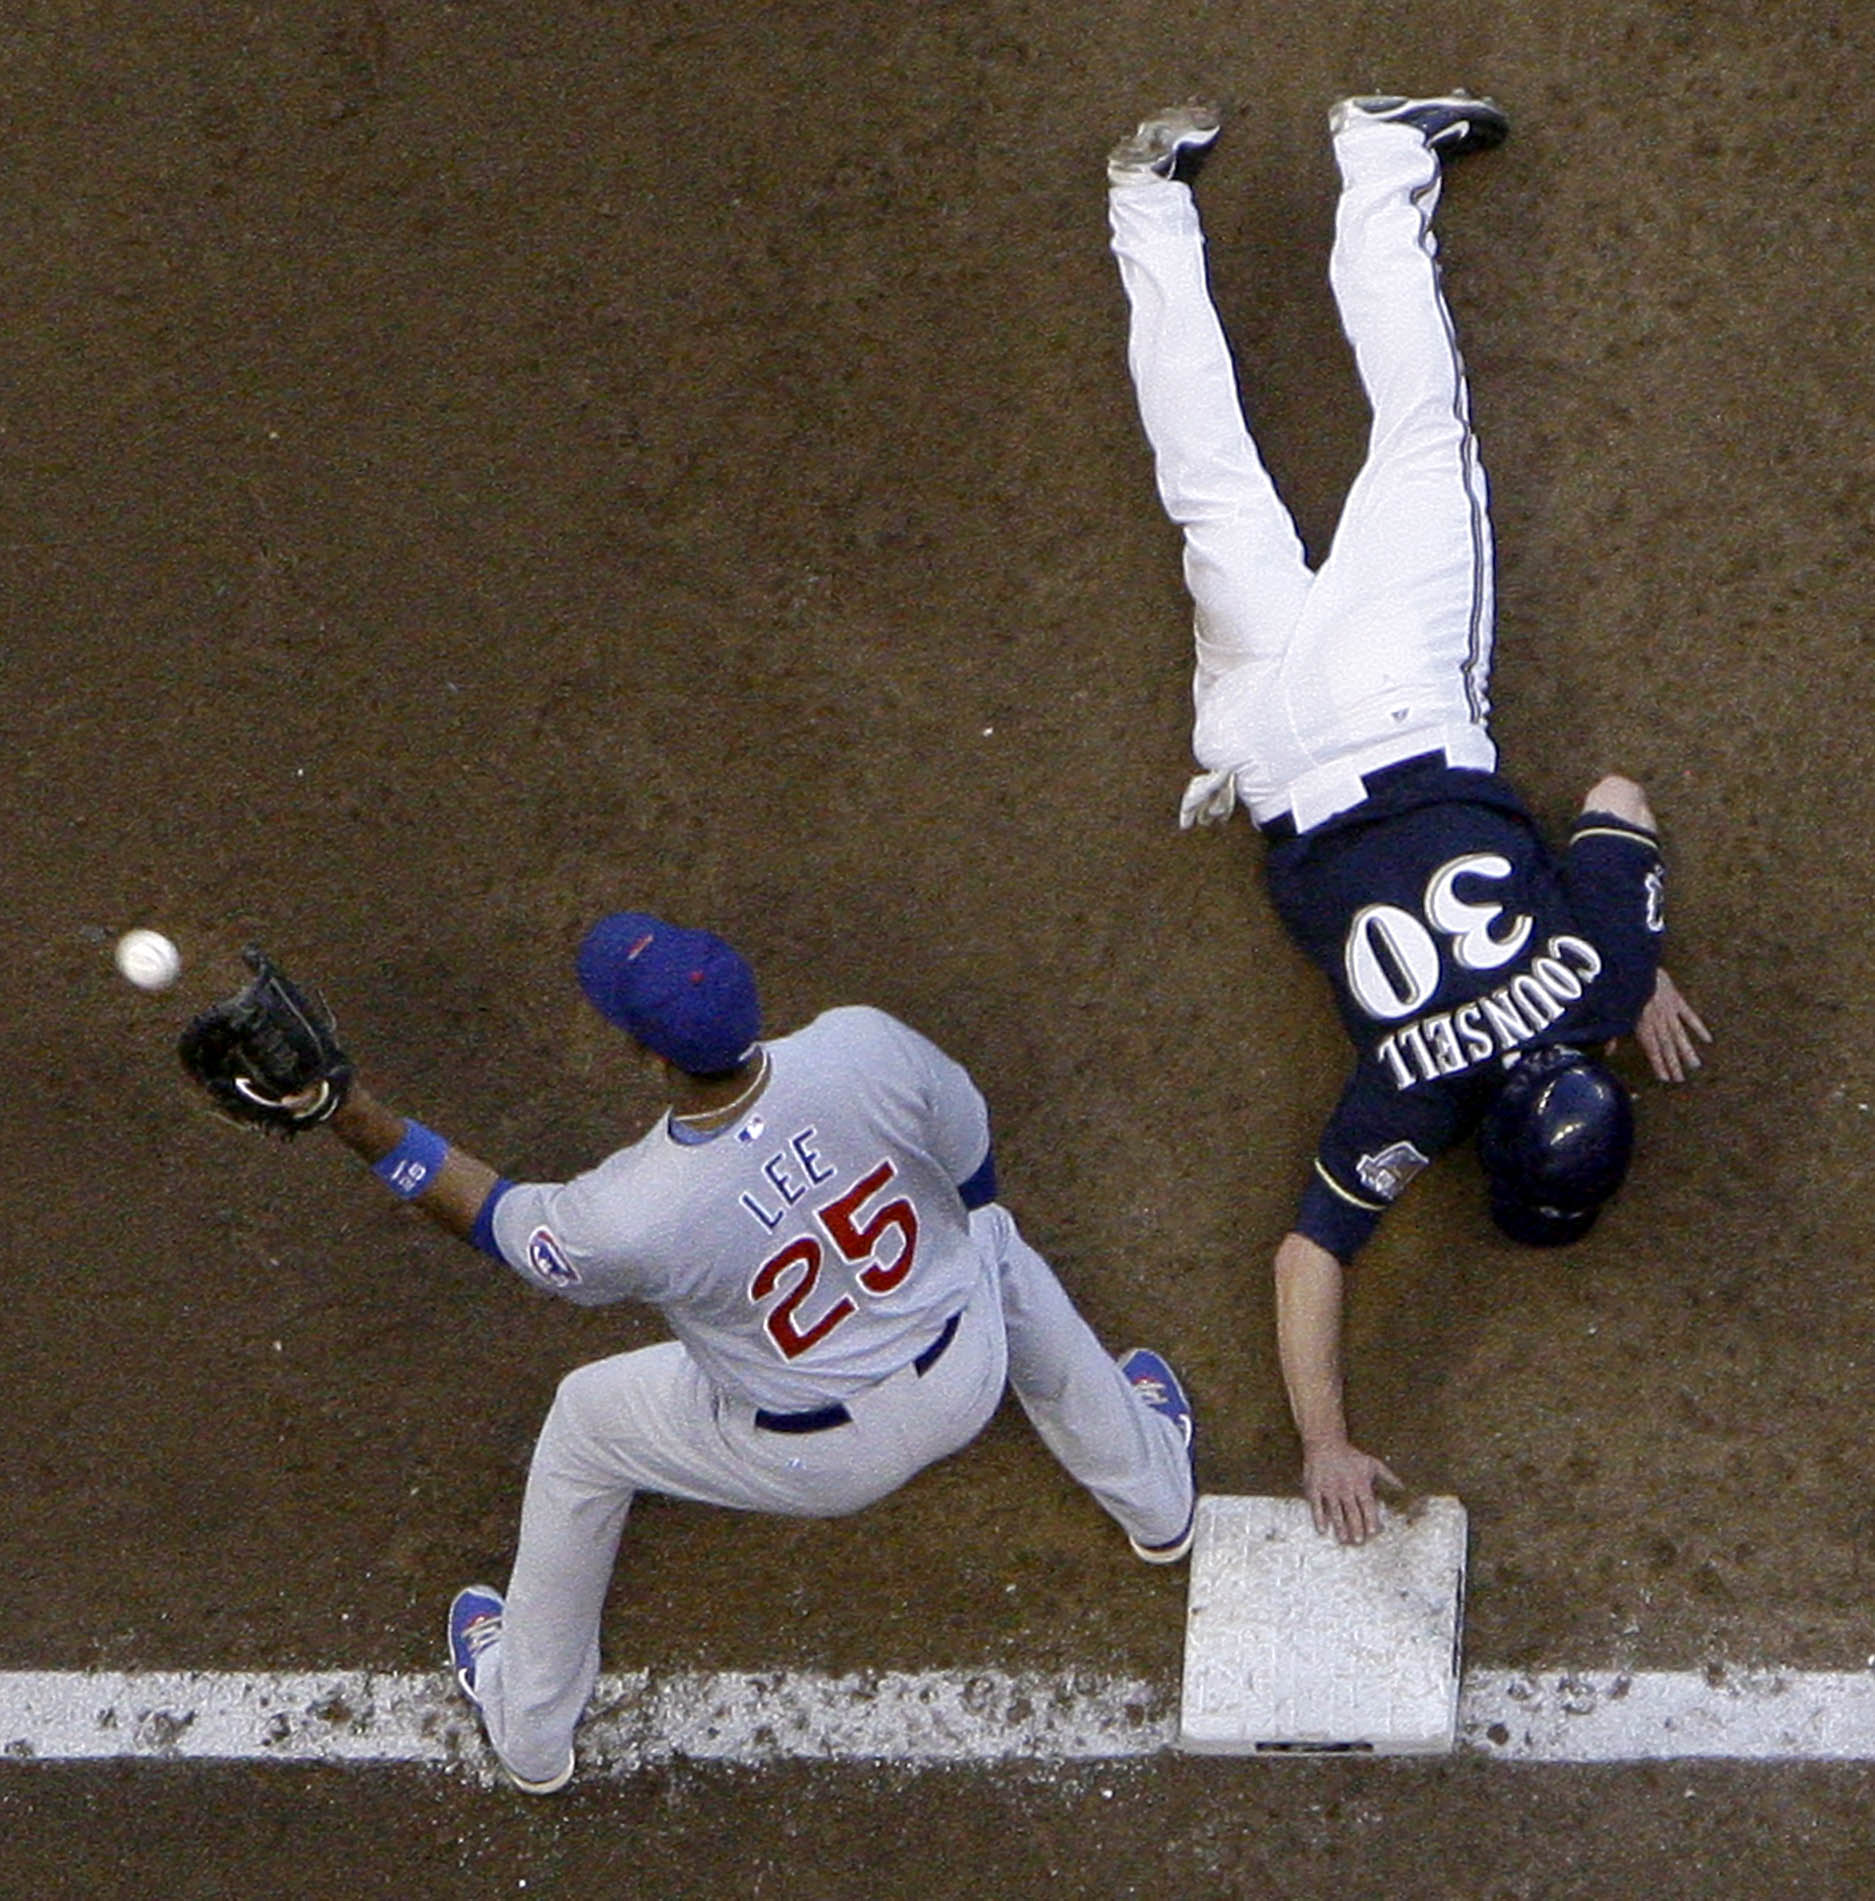 Craig Counsell dives back to first to beat the tag in the third inning of the Cubs vs. Brewers series at Miller Park